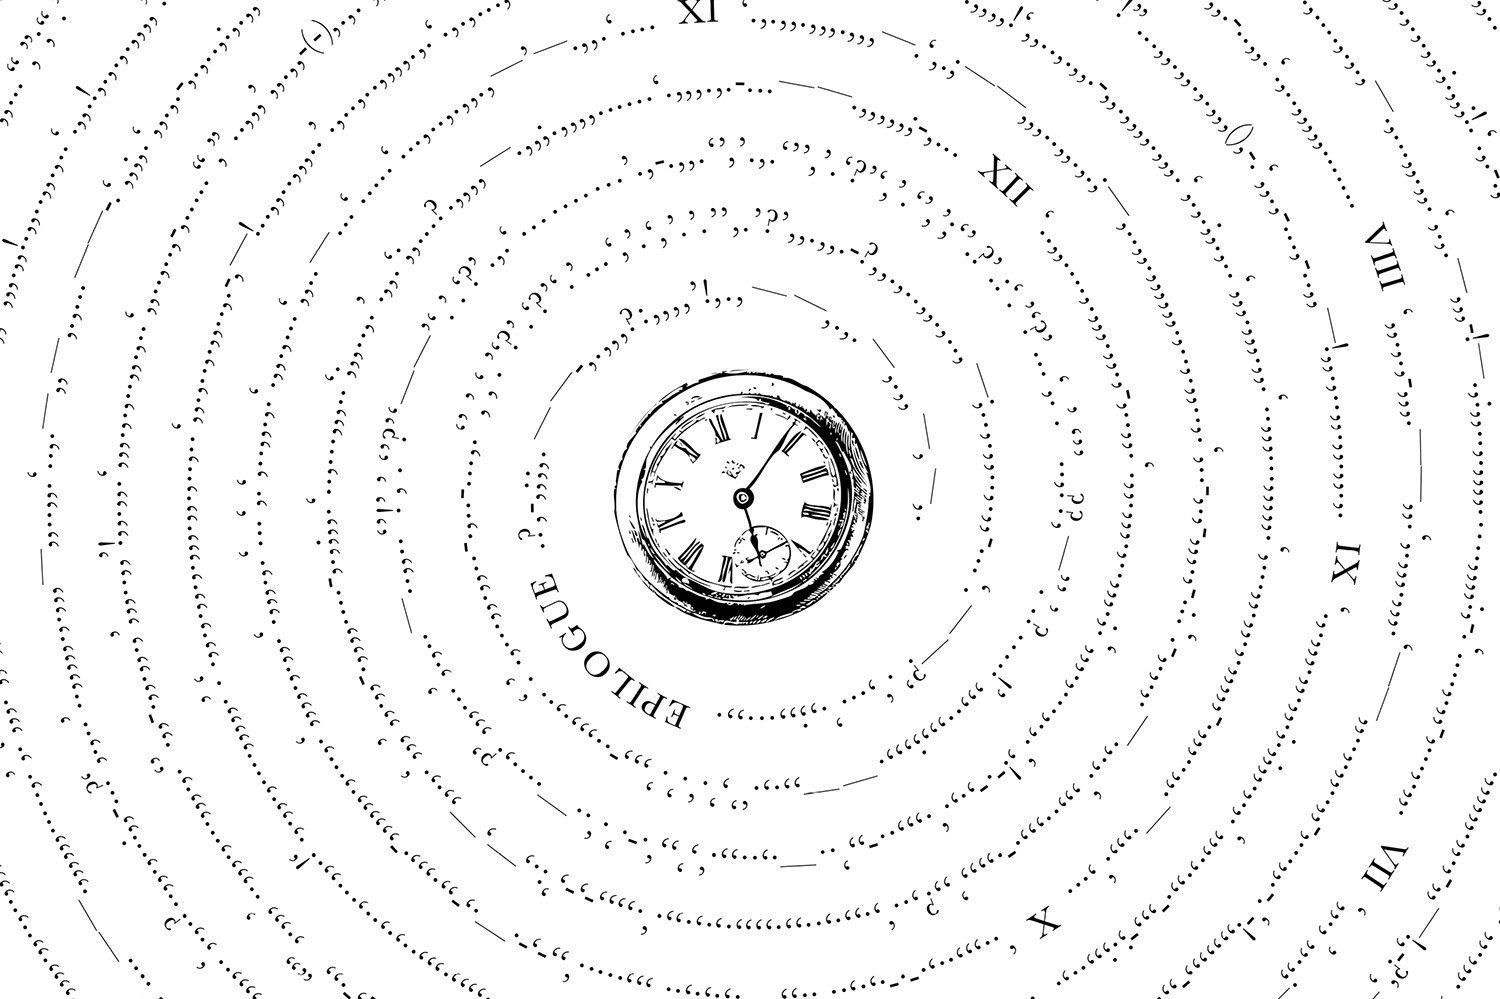 Mesmerizing Graphics Strip Classic Books Down To Their